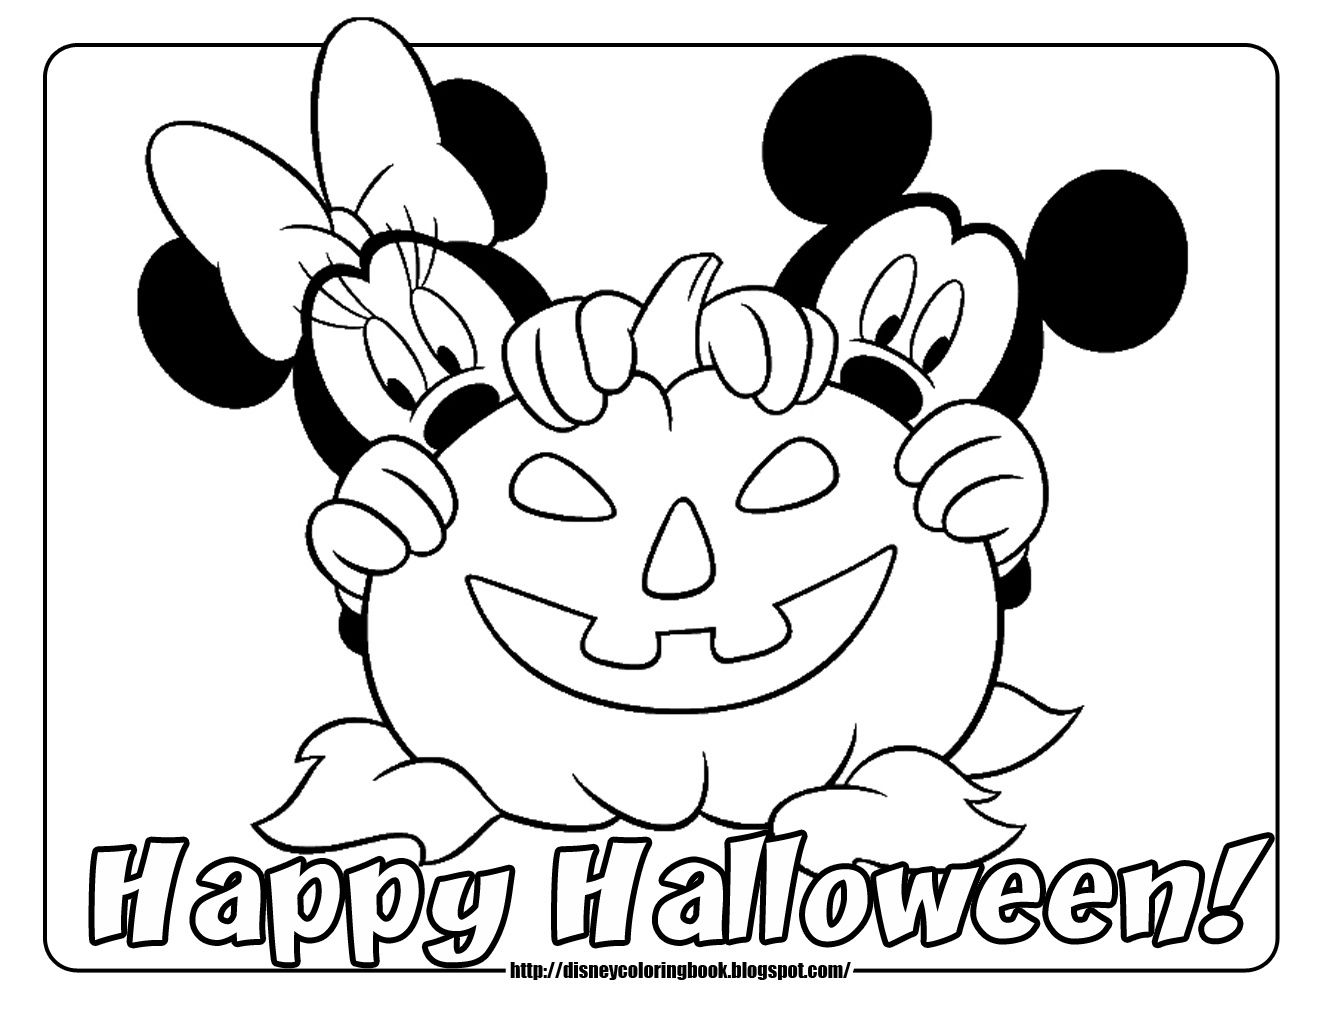 1320x1020 Marvelous Mickey Halloween Coloring Pages Pict For Minnie Mouse